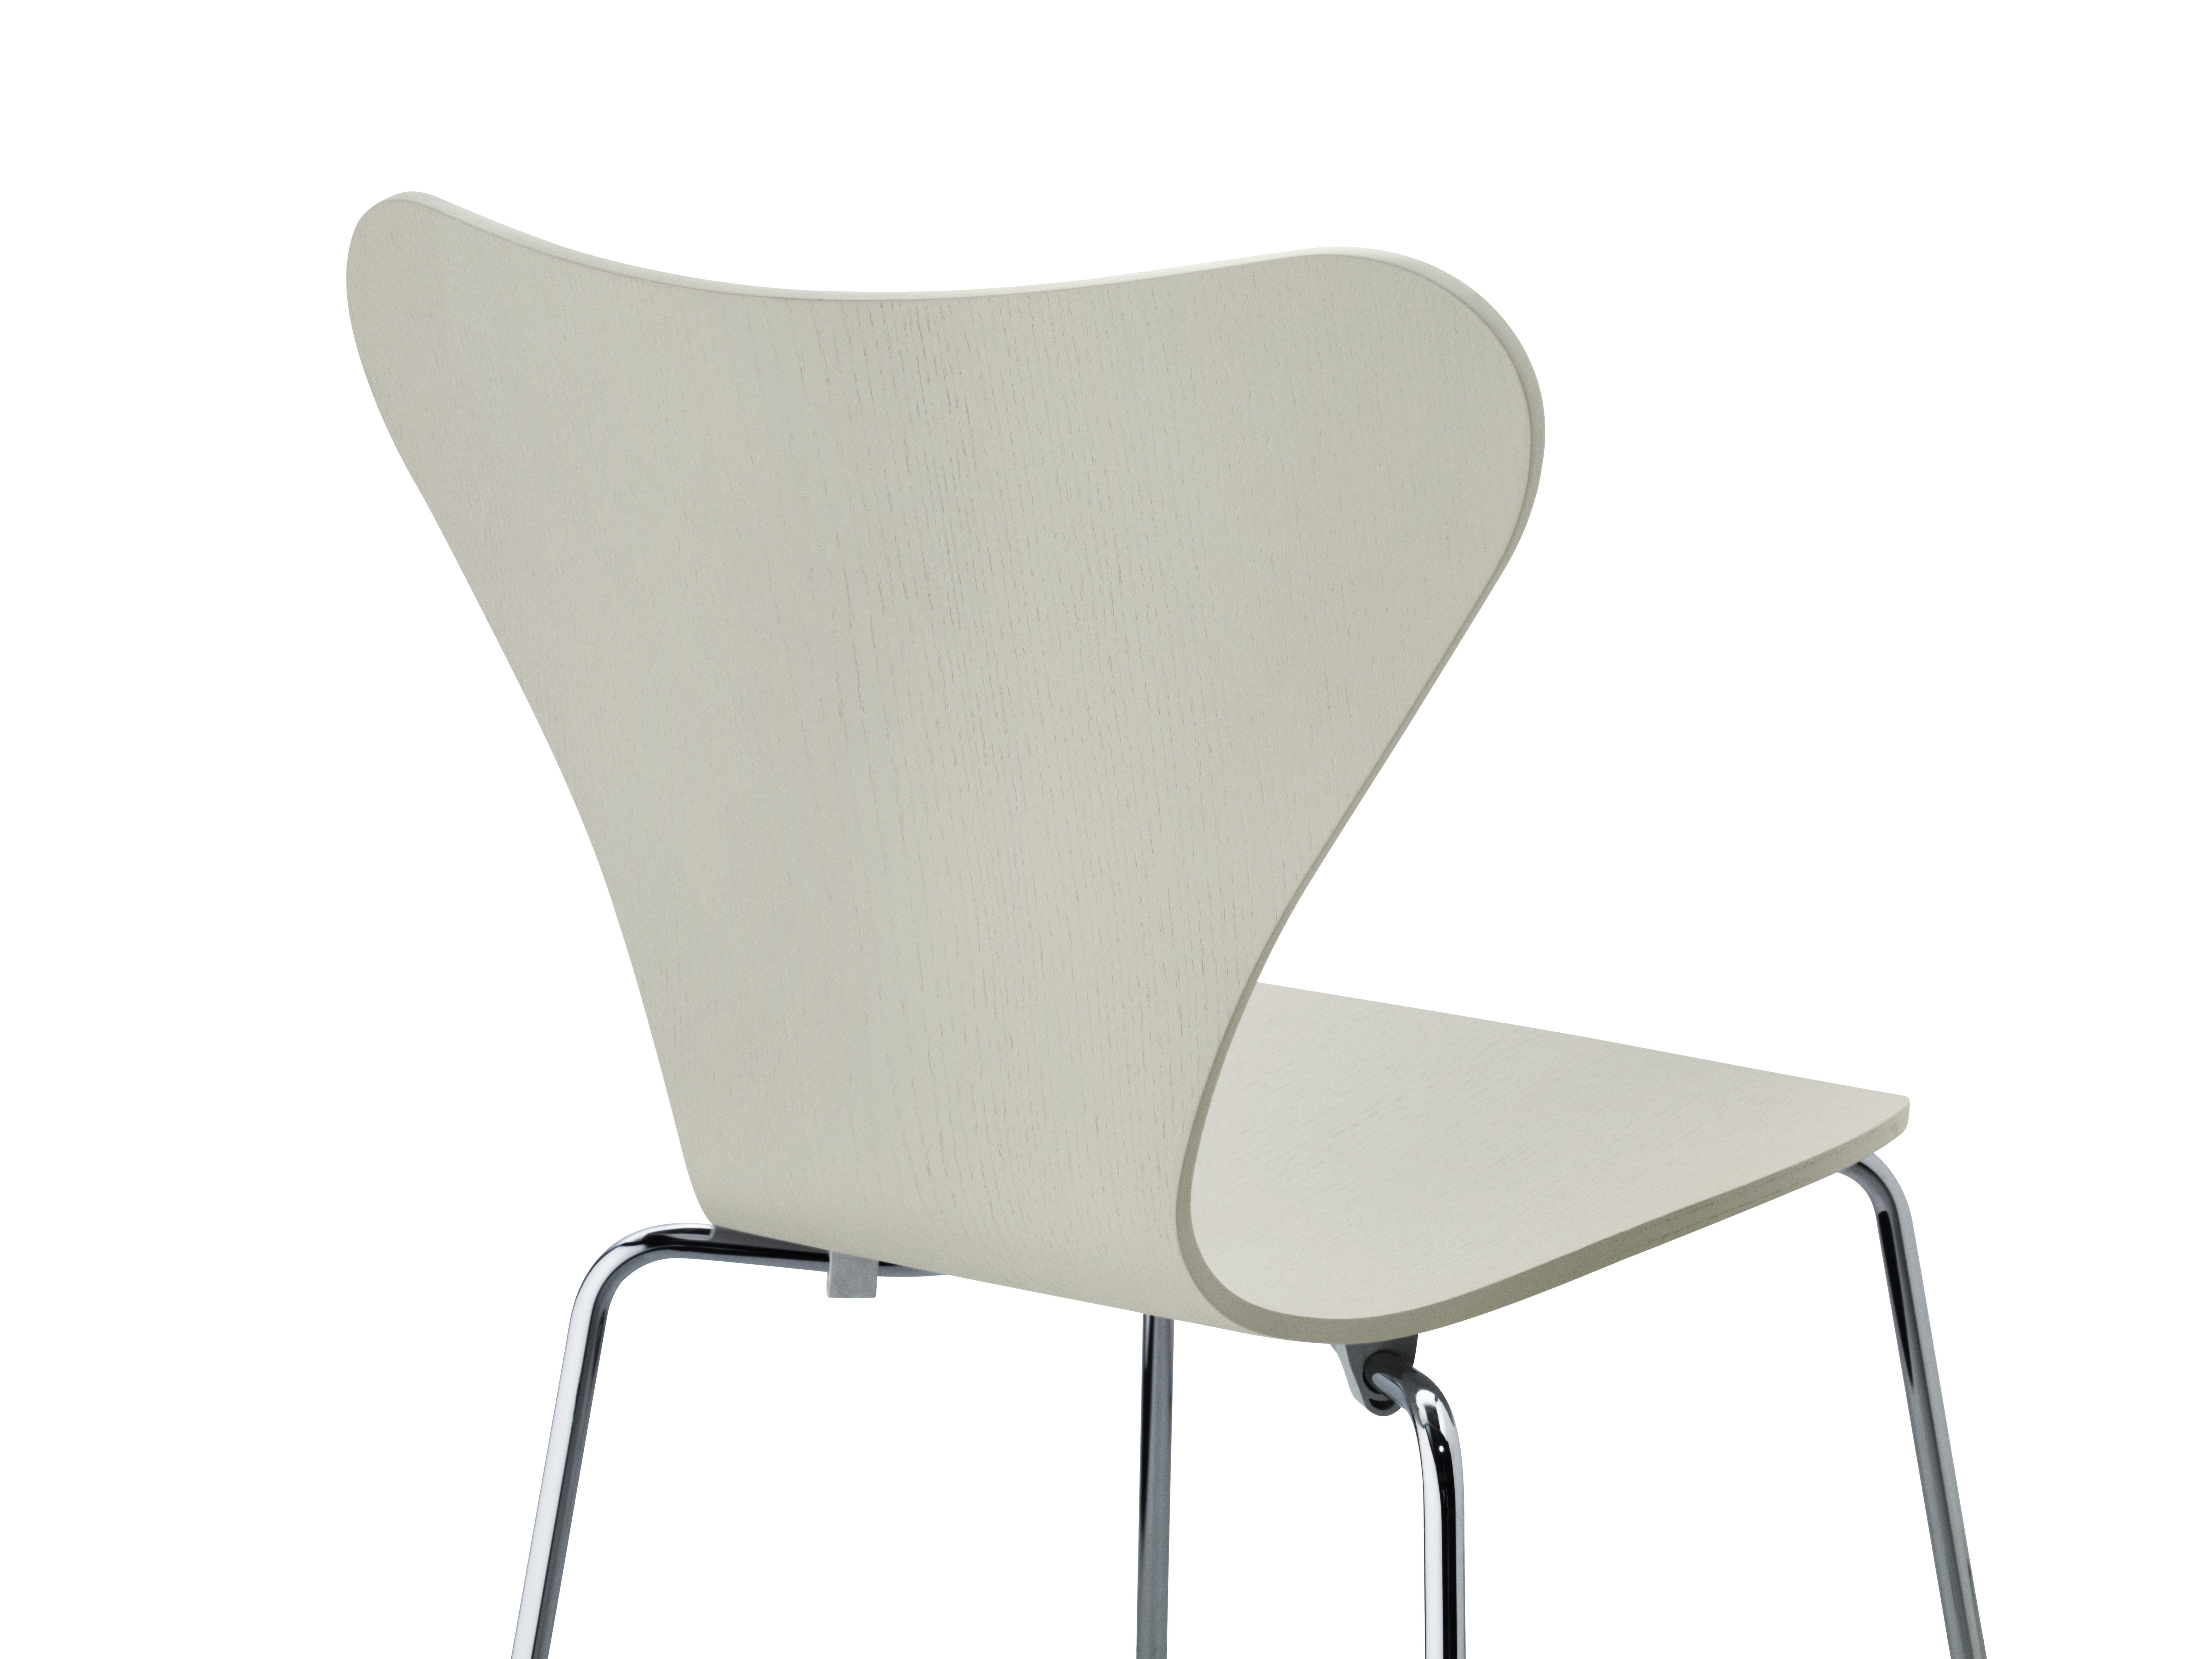 Sedie Serie 7 Fritz Hansen.Stacking Chair Serie 7 By Fritz Hansen Light Grey Tainted Ash L